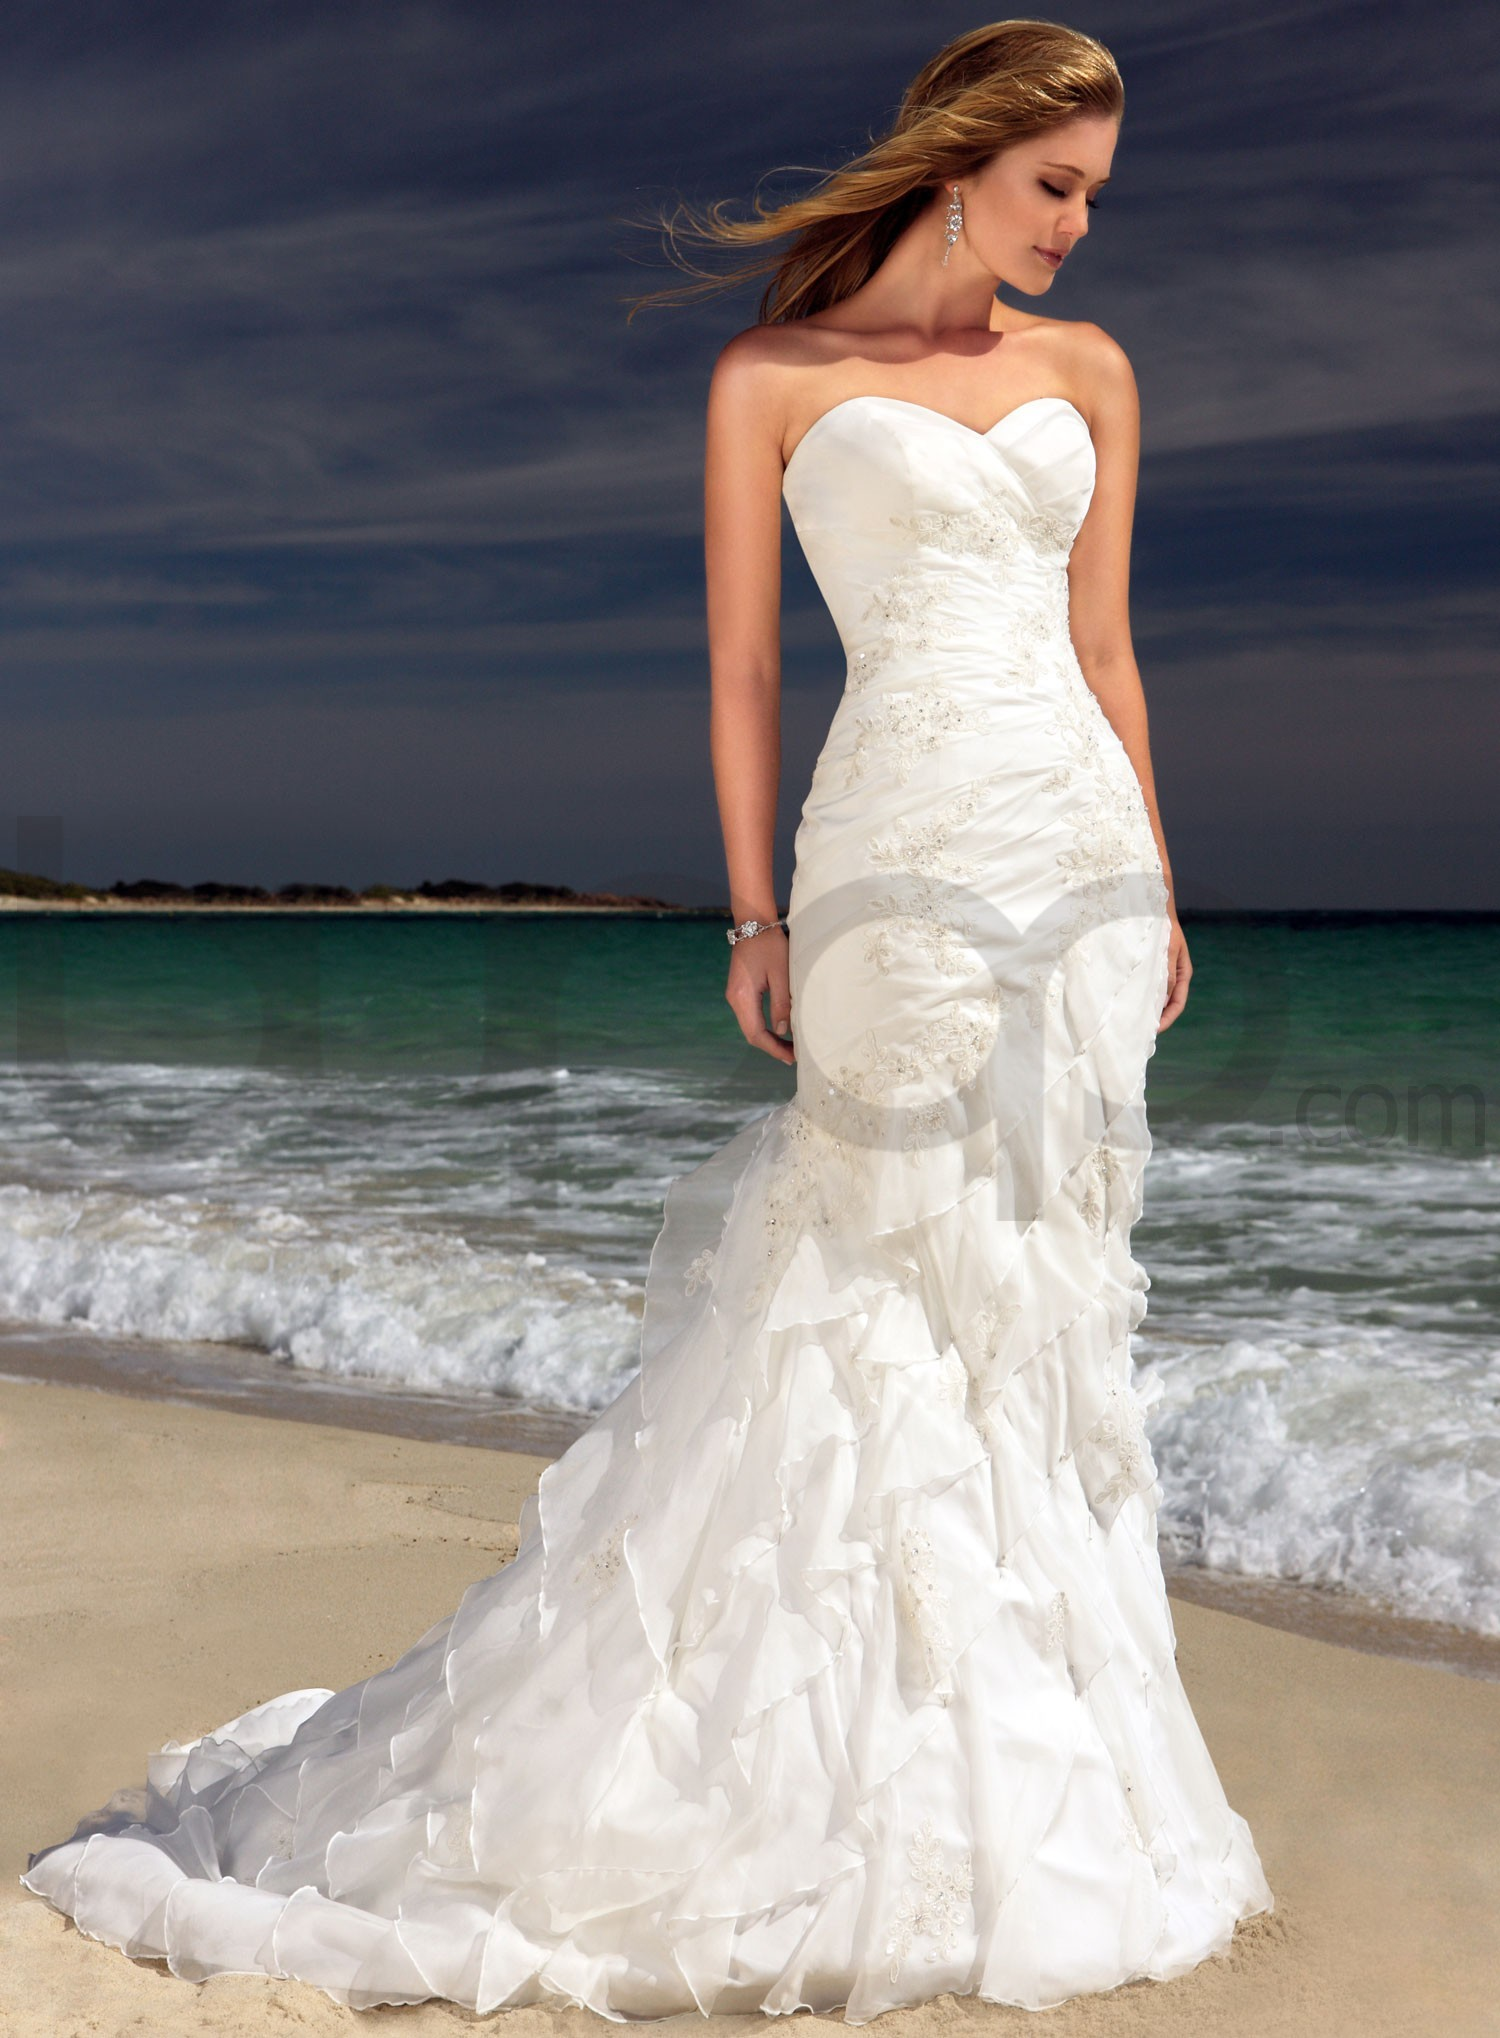 White Strapless Sweetheart Mermaid Wedding Dress With